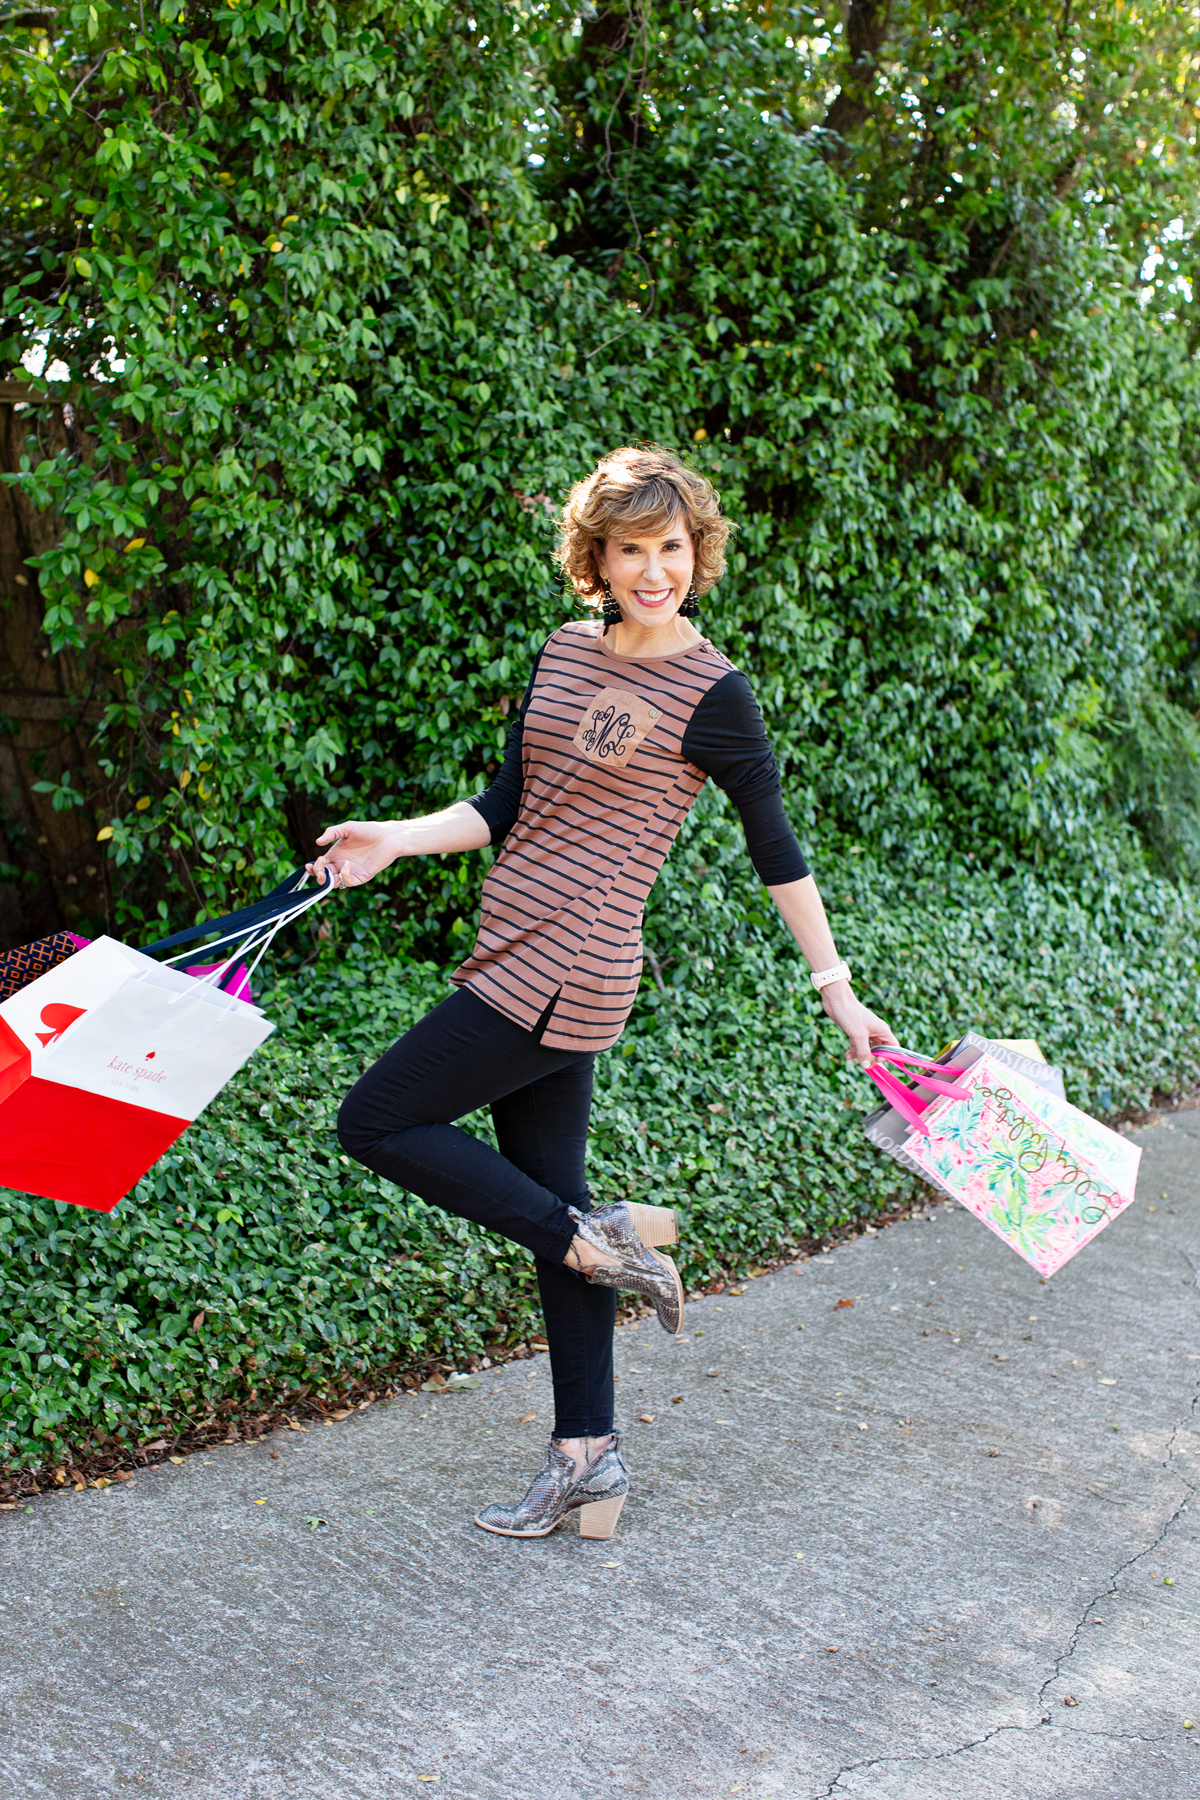 woman spinning around on one leg carrying lots of shopping bags